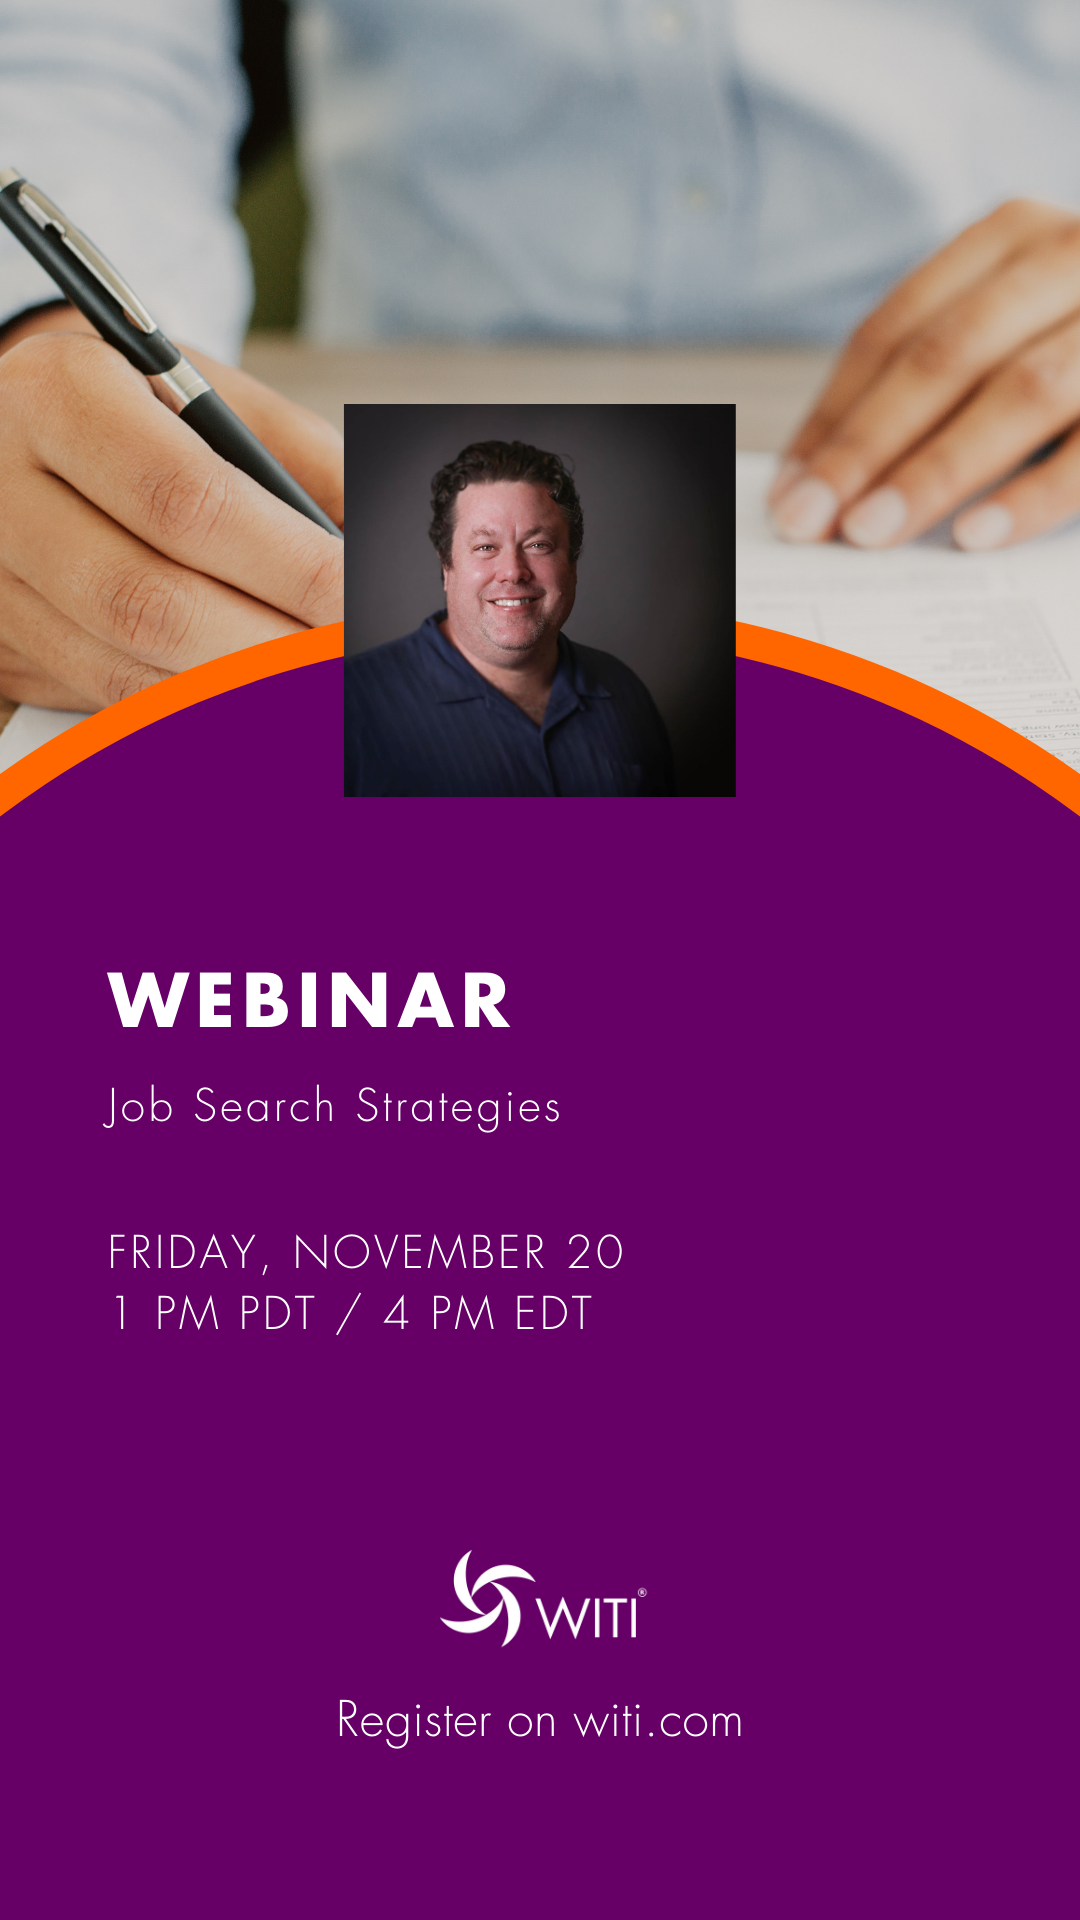 JOB SEARCH STRATEGIES 11.20 Vertical.png